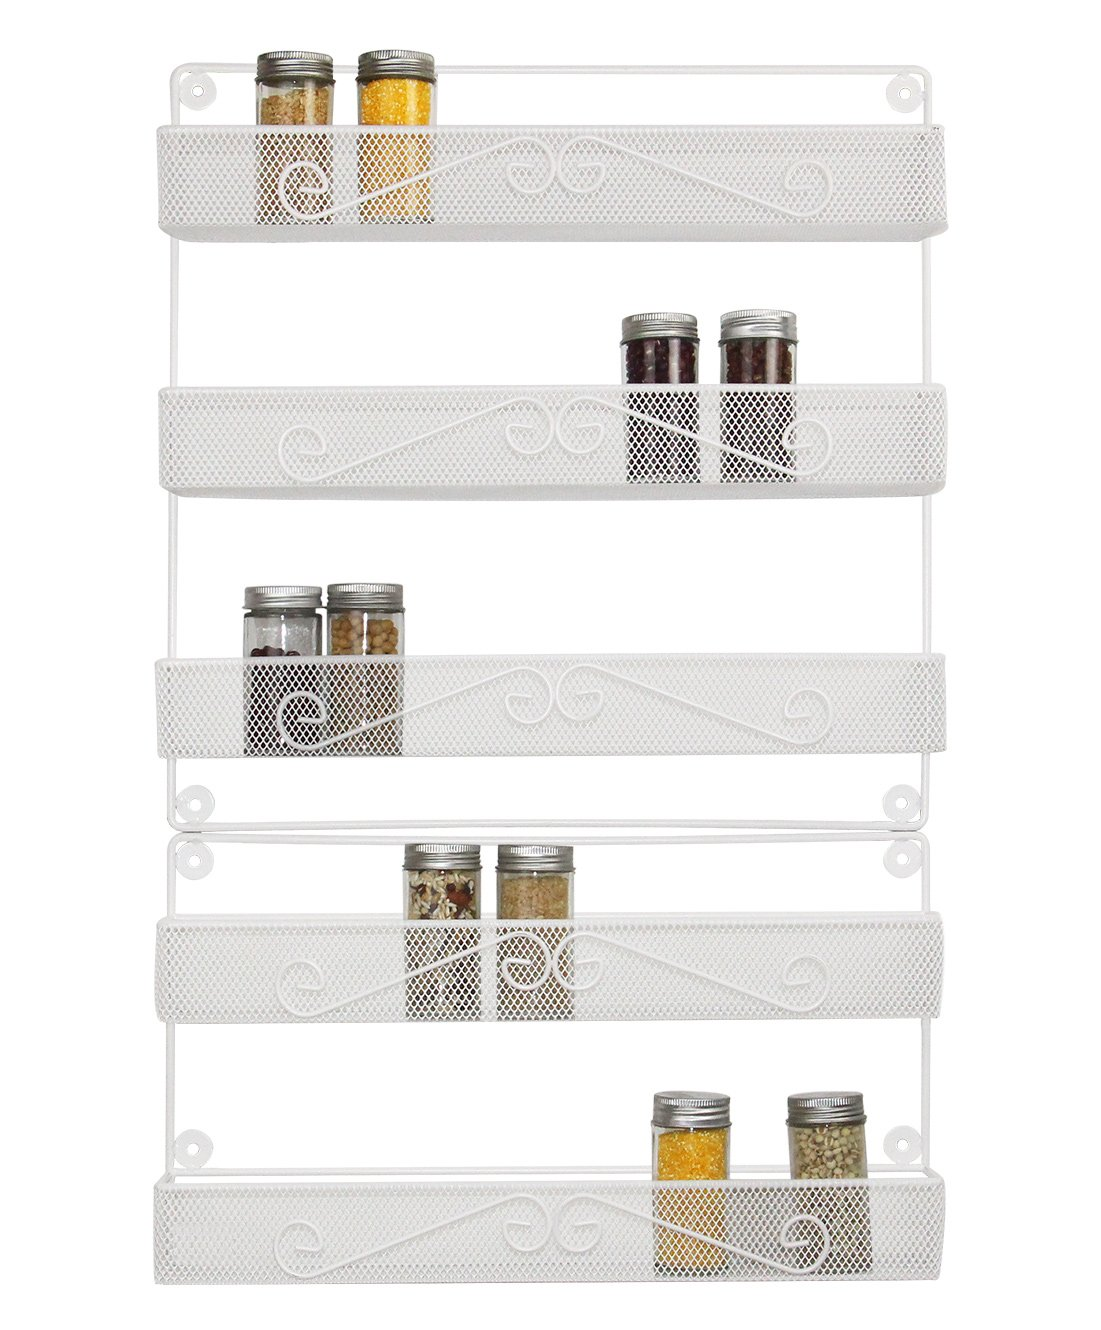 ESYLIFE 2 Tier and 3 Tier Wall Mounted Large Spice Rack Organizer, White